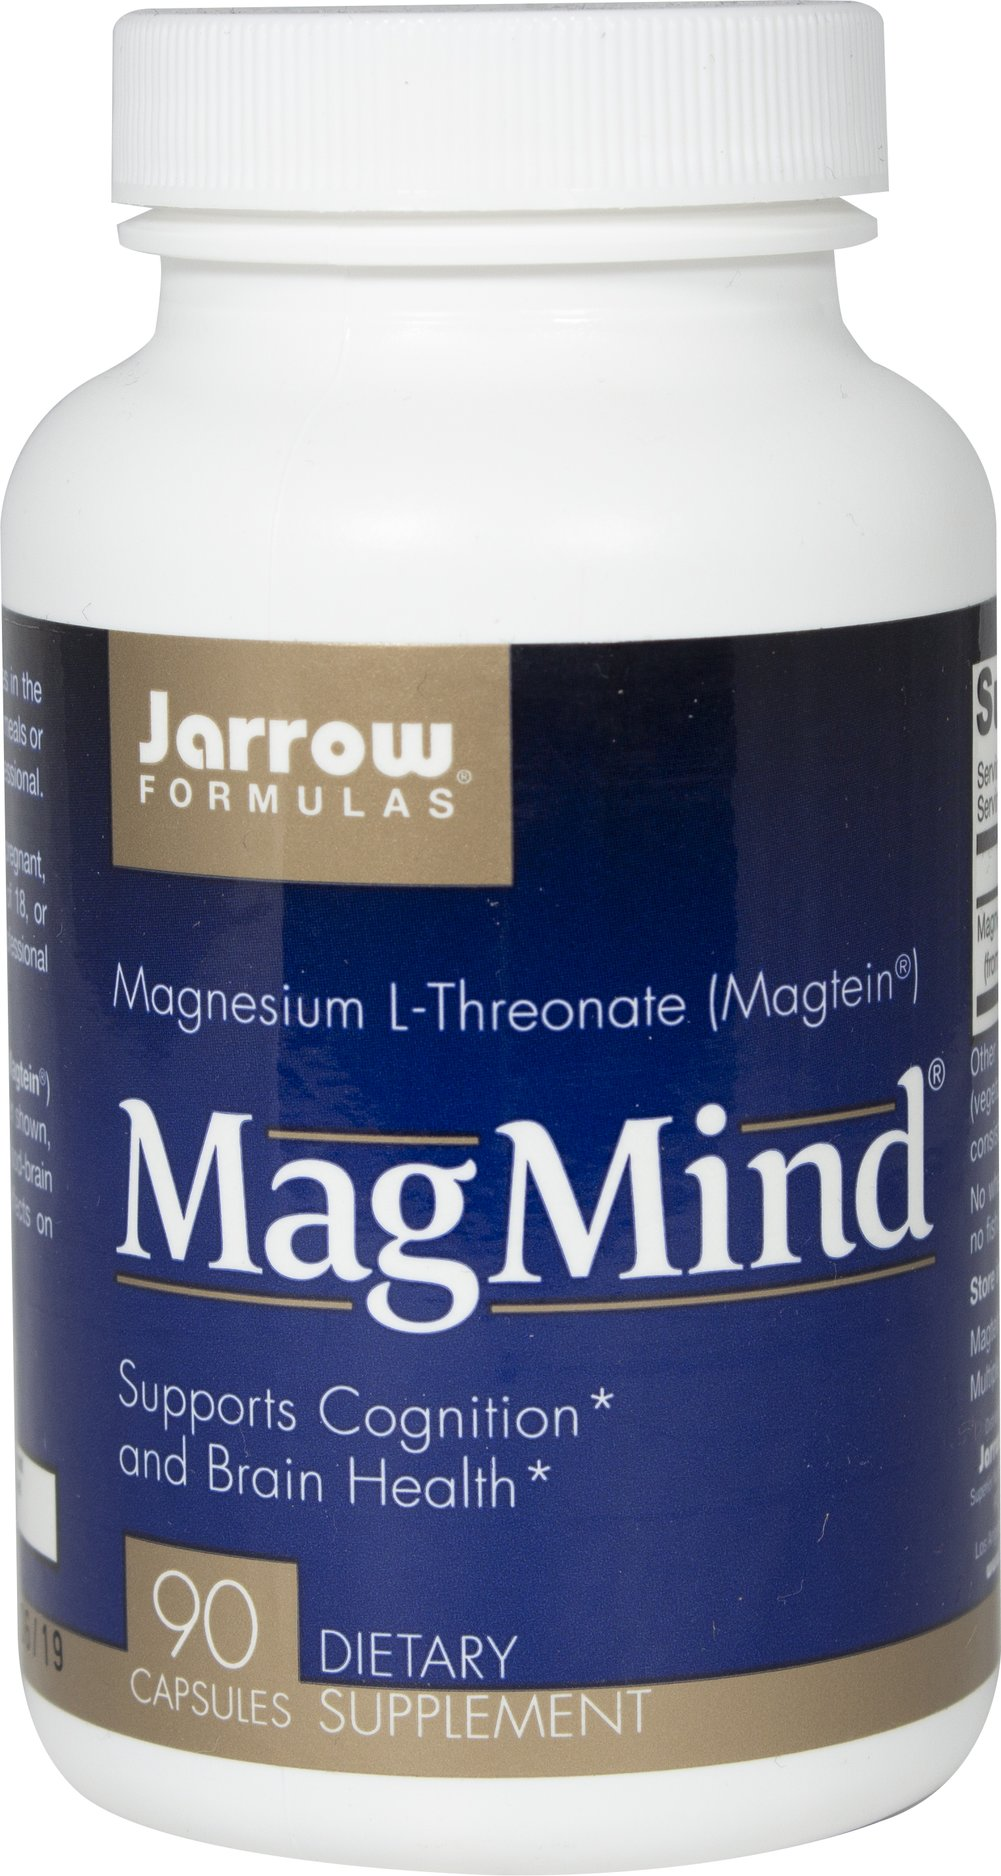 MagMind™ Magnesium L-Threonate Thumbnail Alternate Bottle View